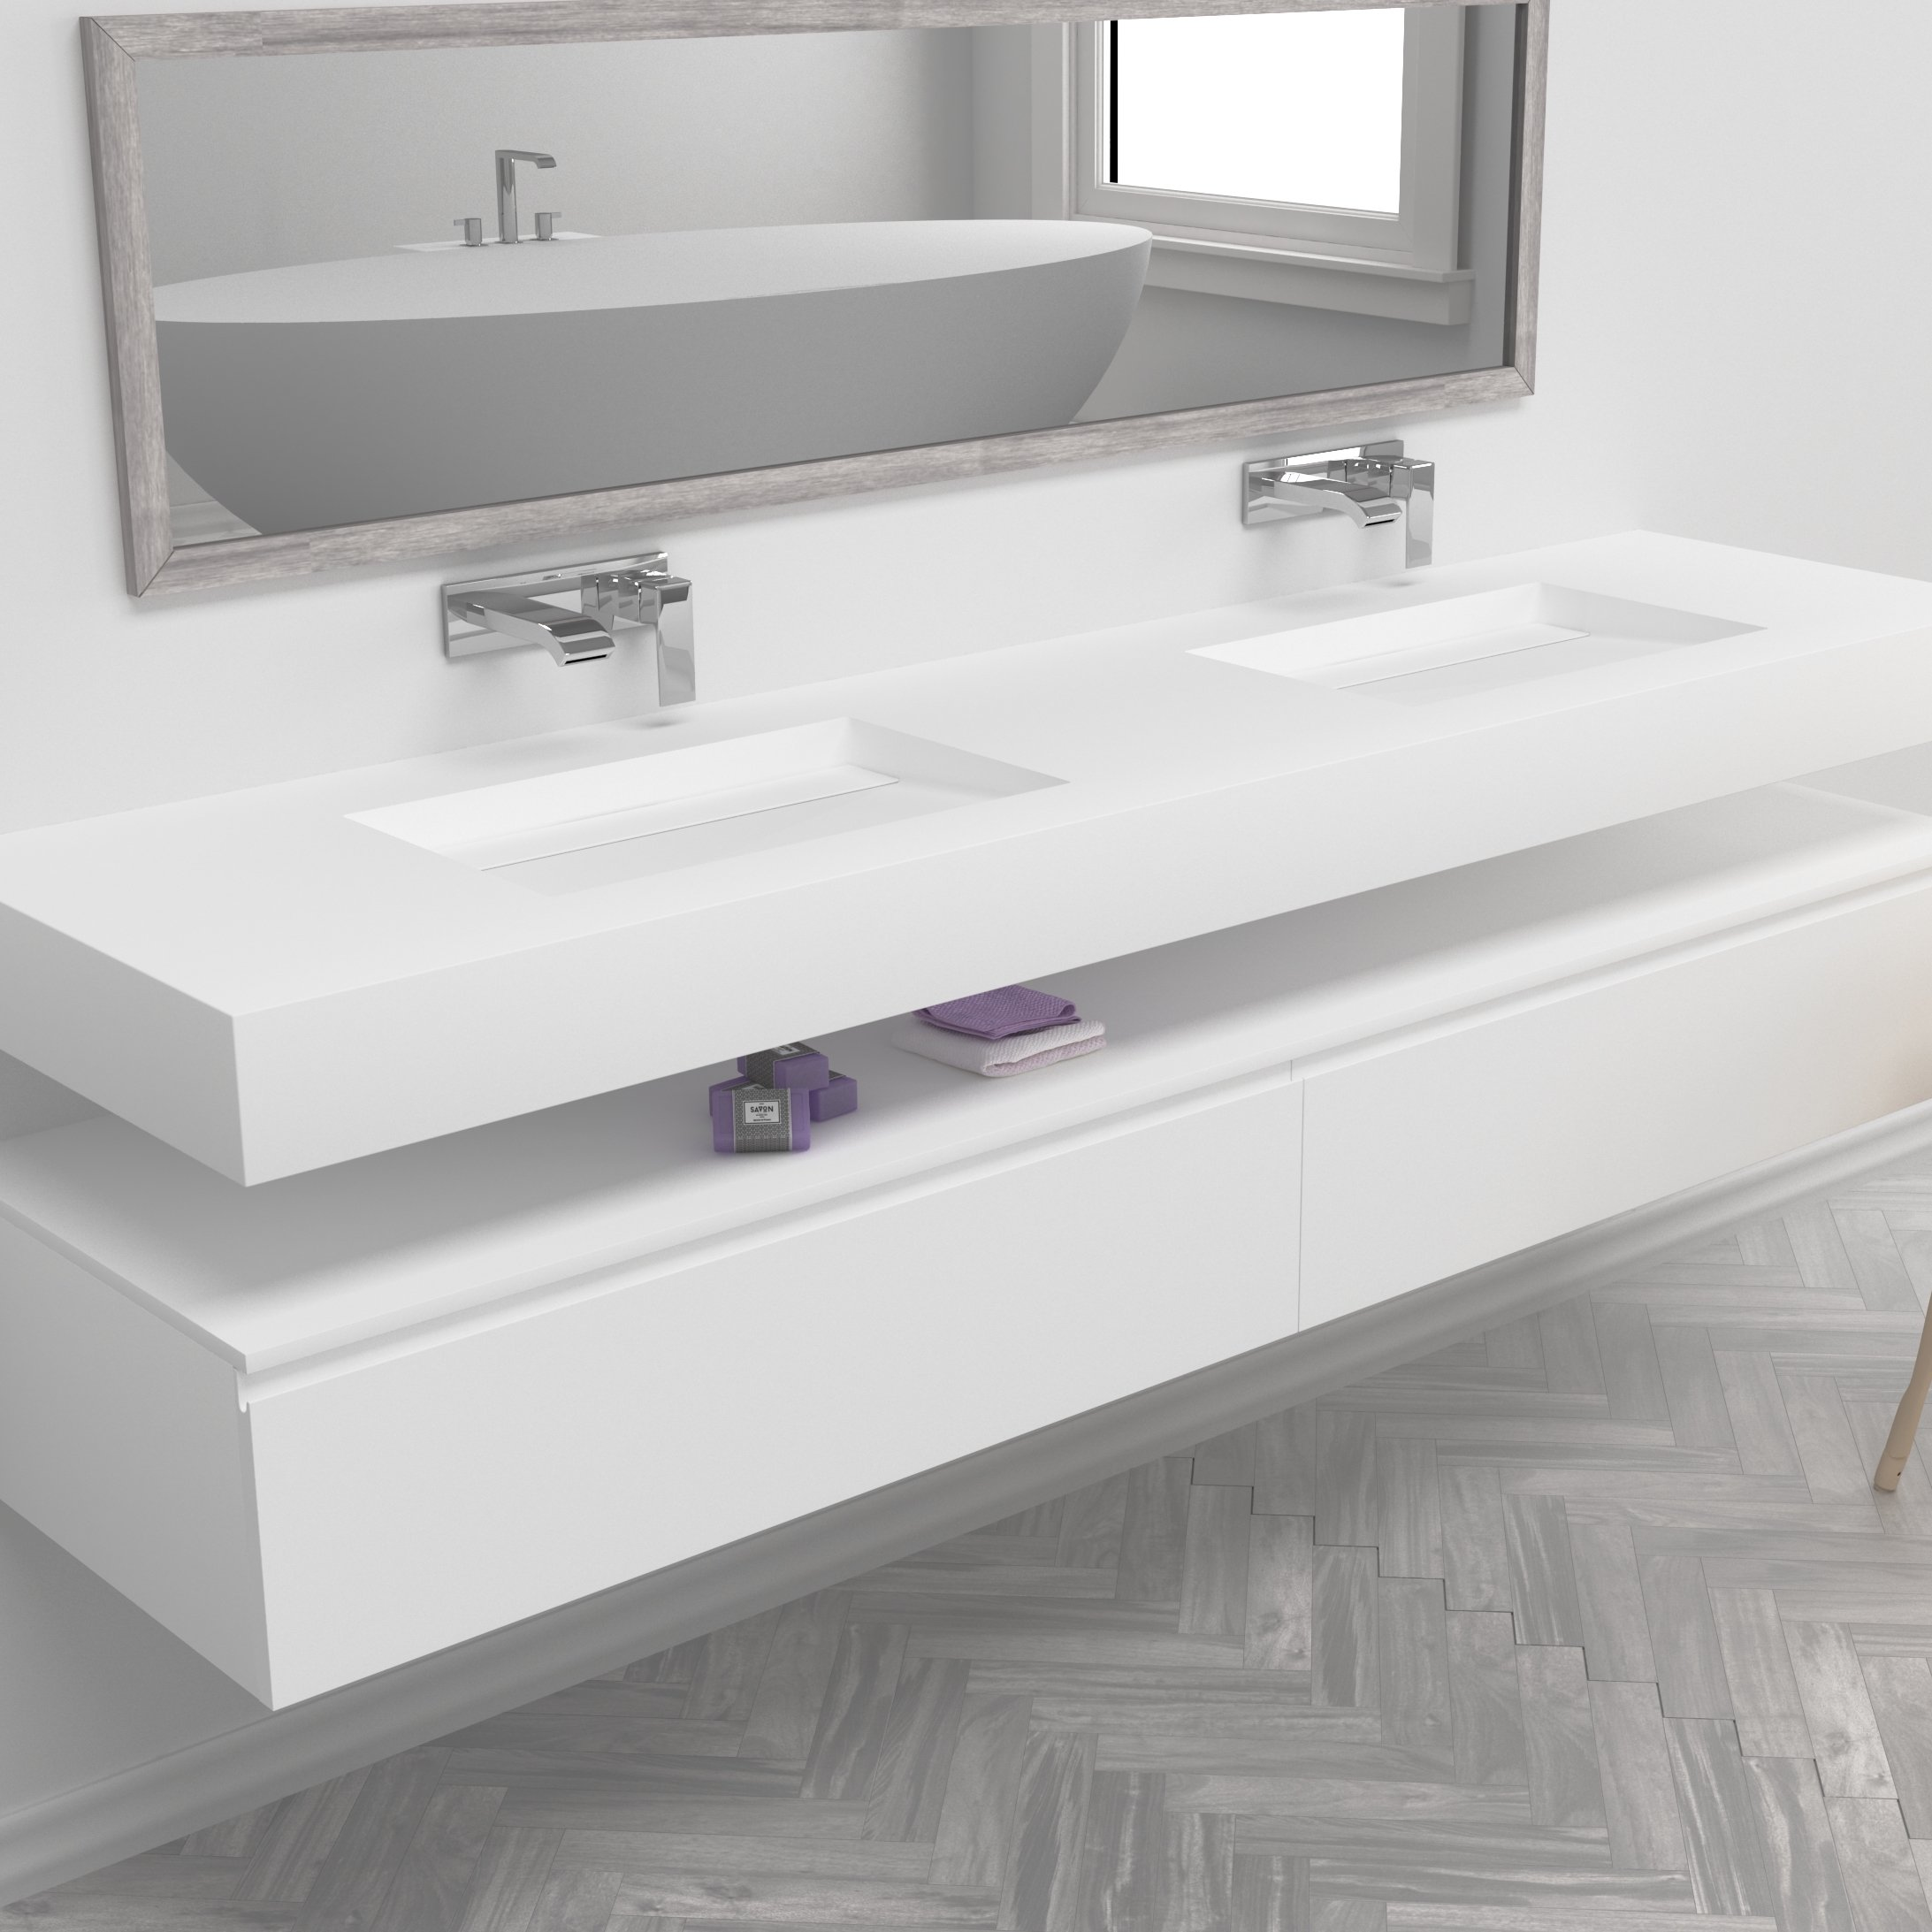 Oh, Alabama! Just what is it about this particular double Corian washbasin?